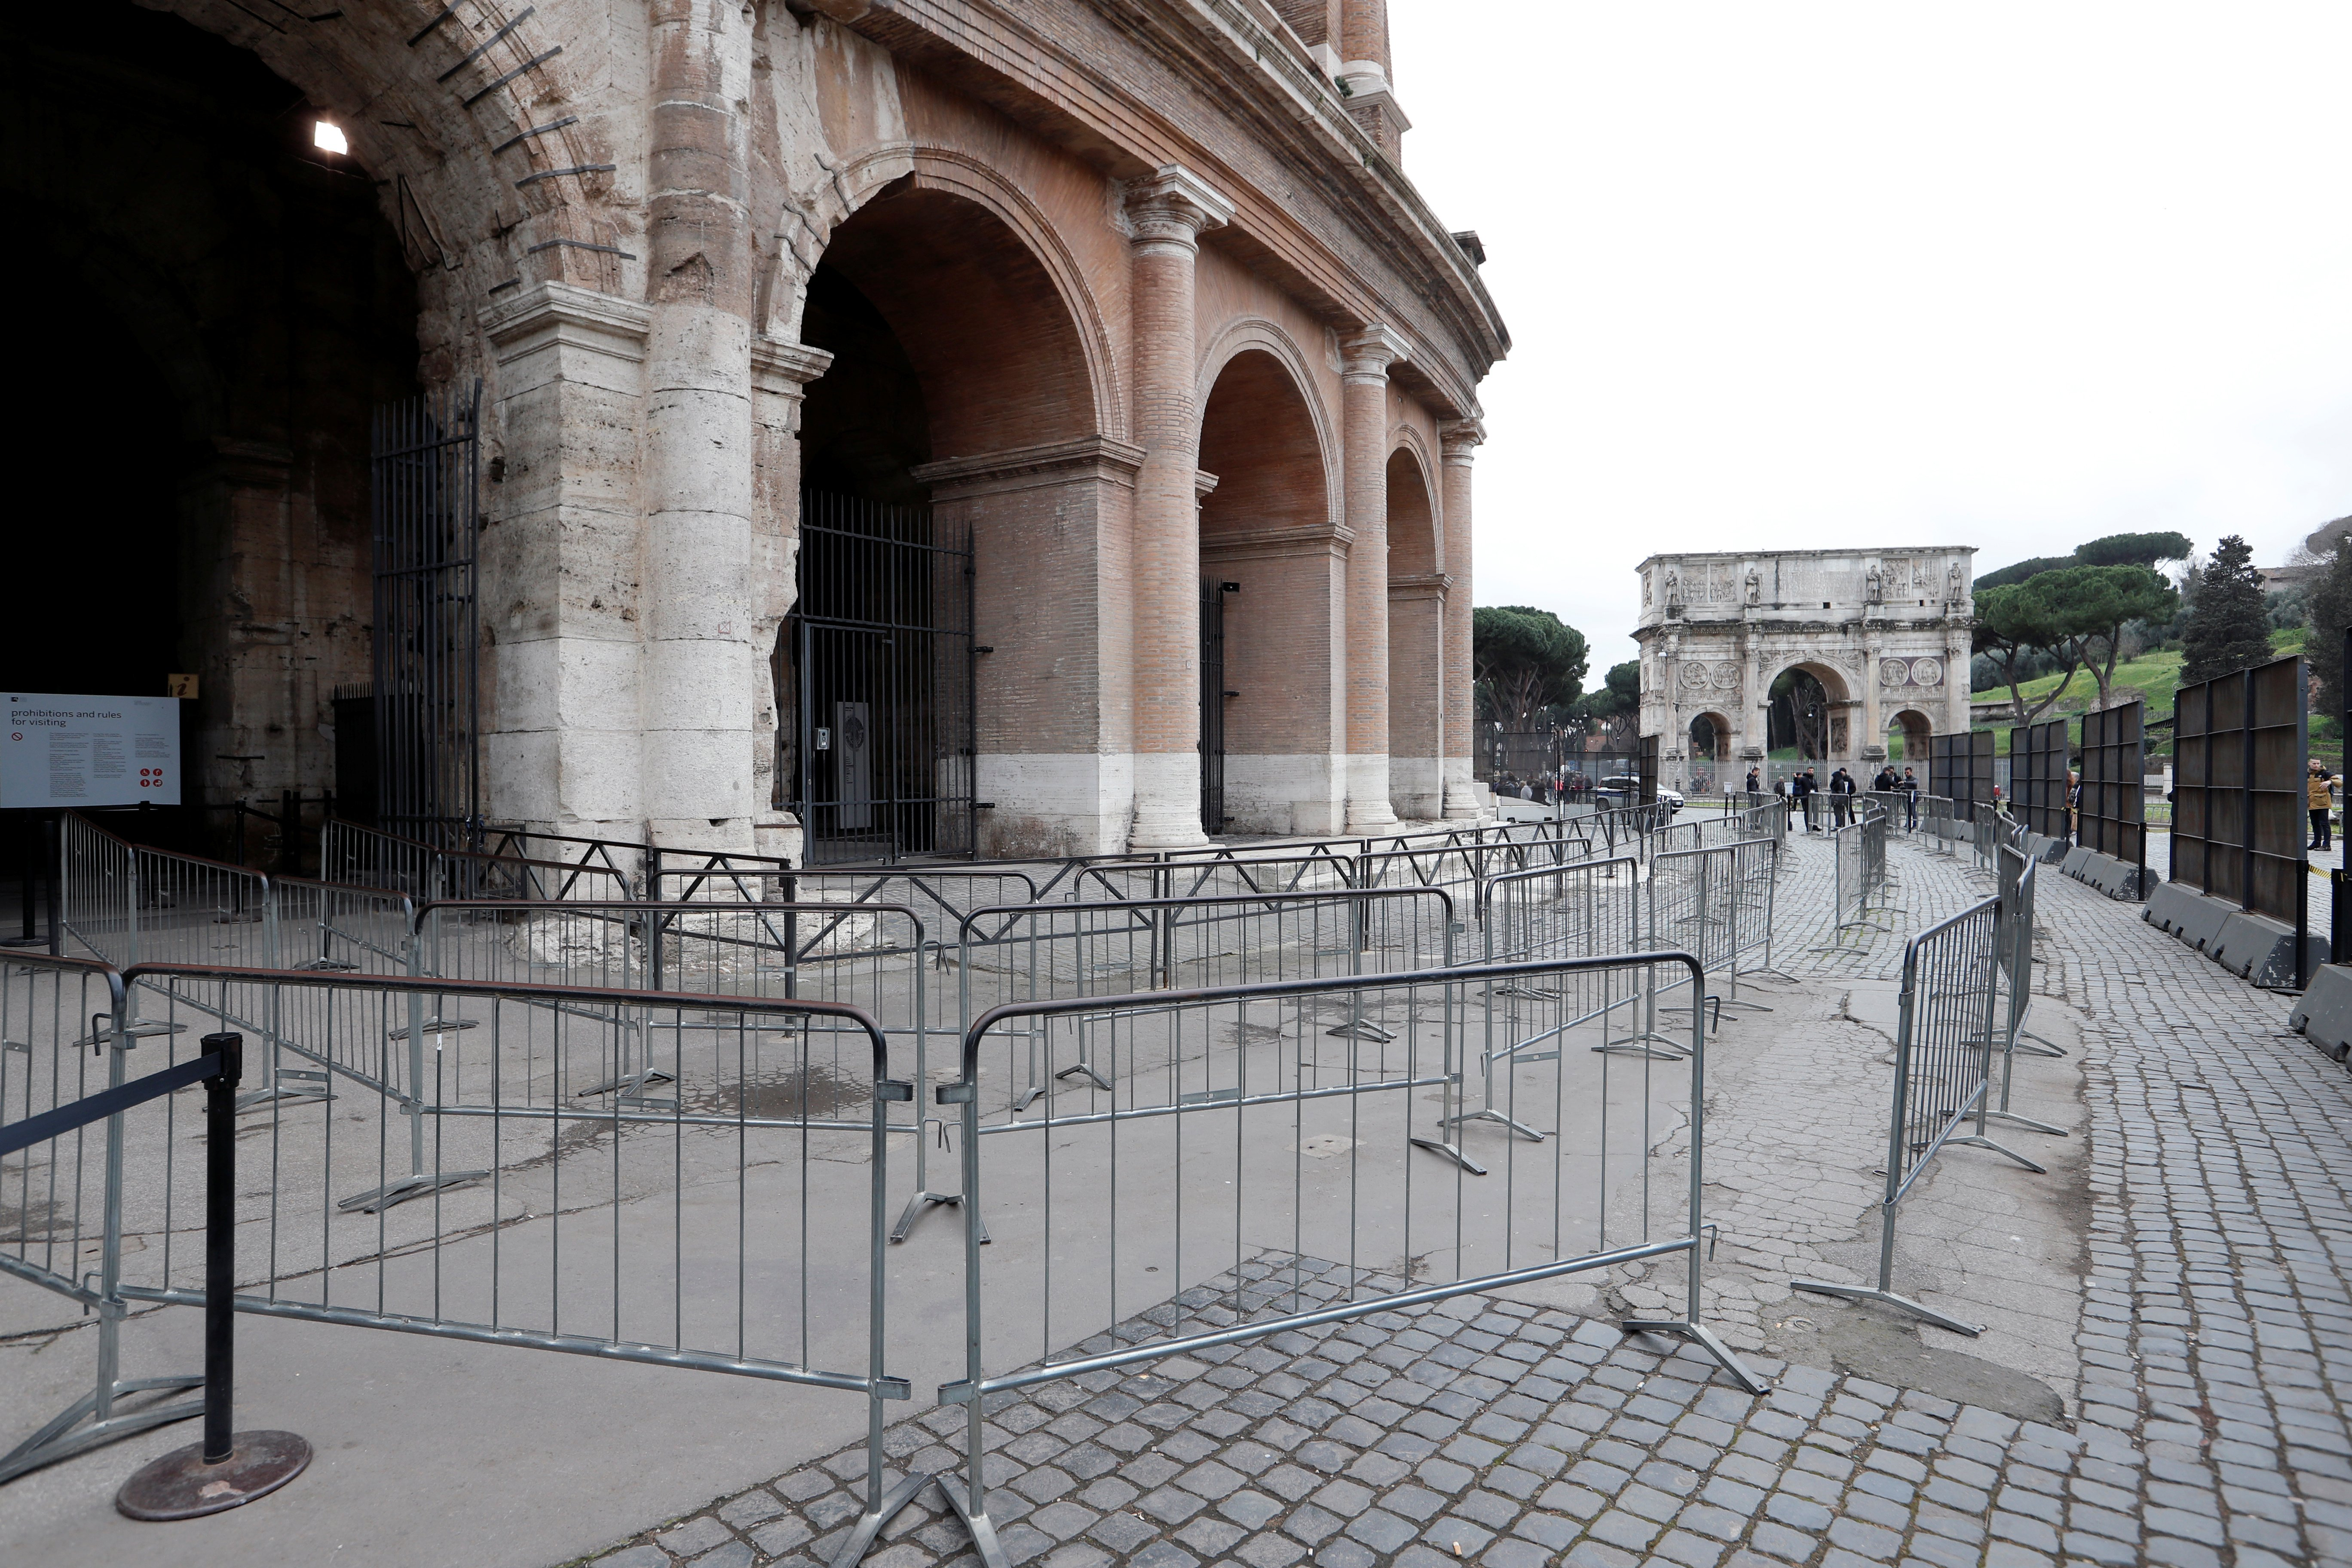 An empty pathway leading to the entrance of the Colosseum, where usually there would be a long queue of tourists waiting, is seen in Rome, Italy, March 2, 2020. (Reuters Photo)